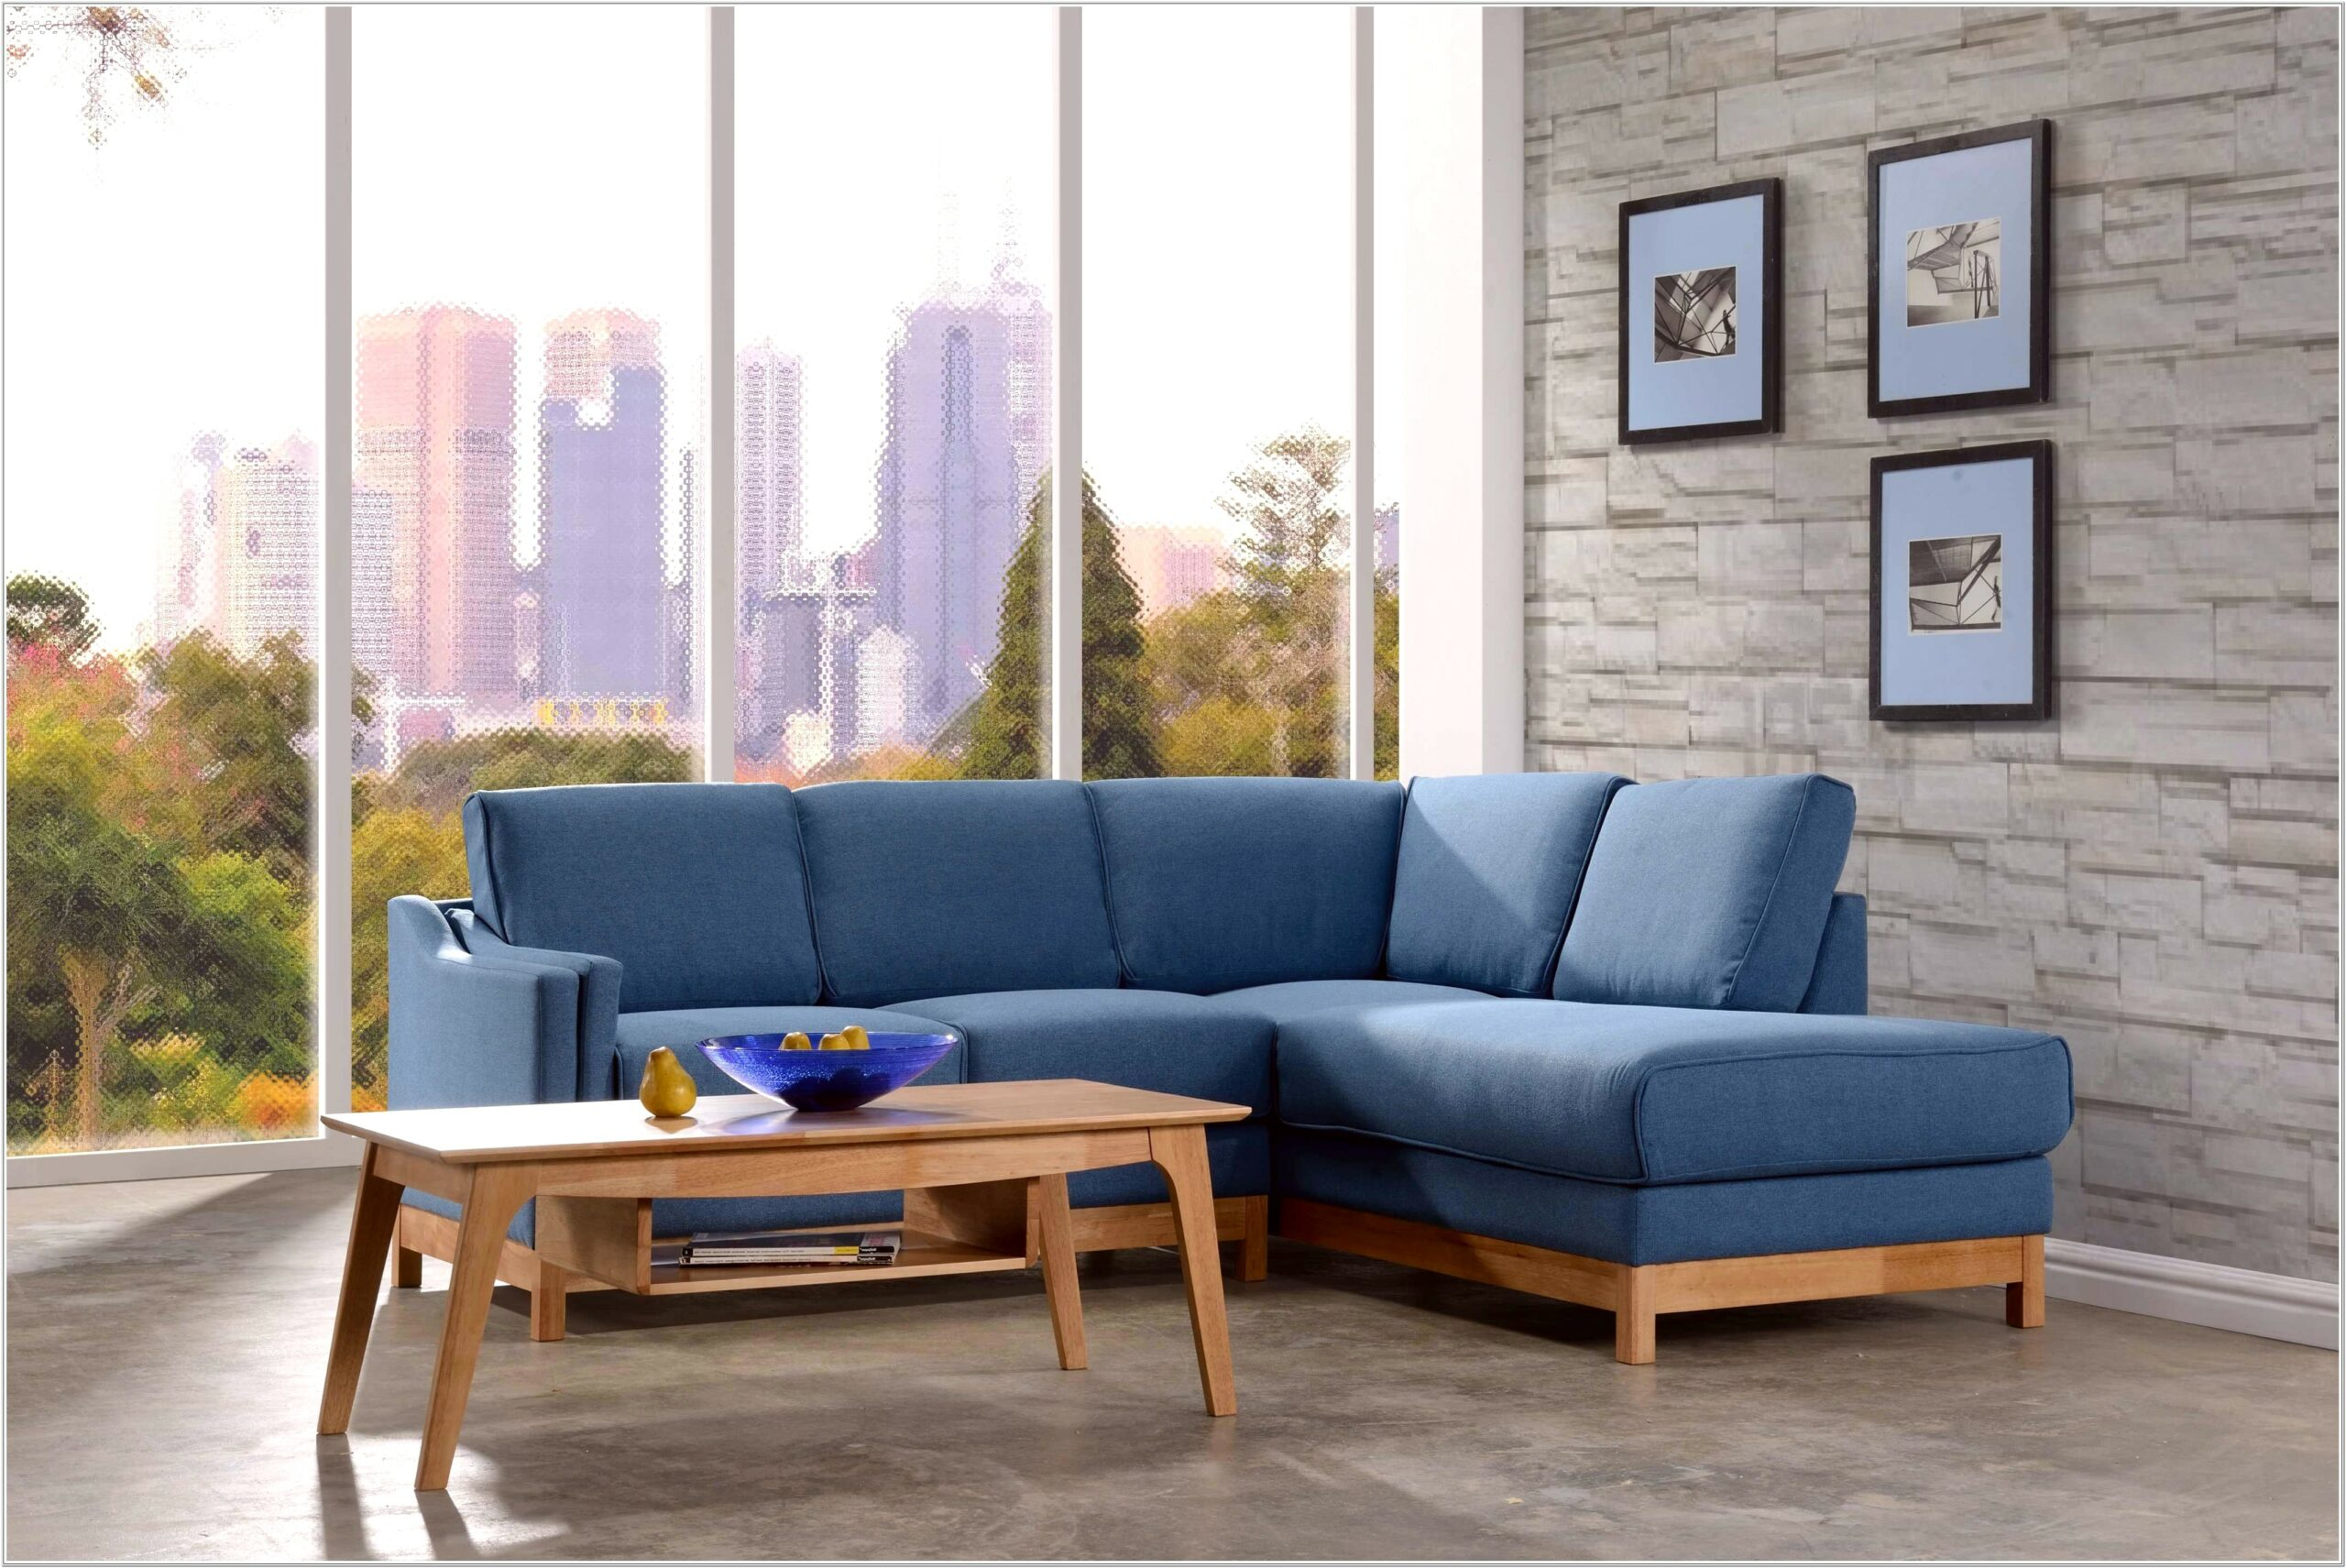 Blue Sofa Living Room Decor Ideas